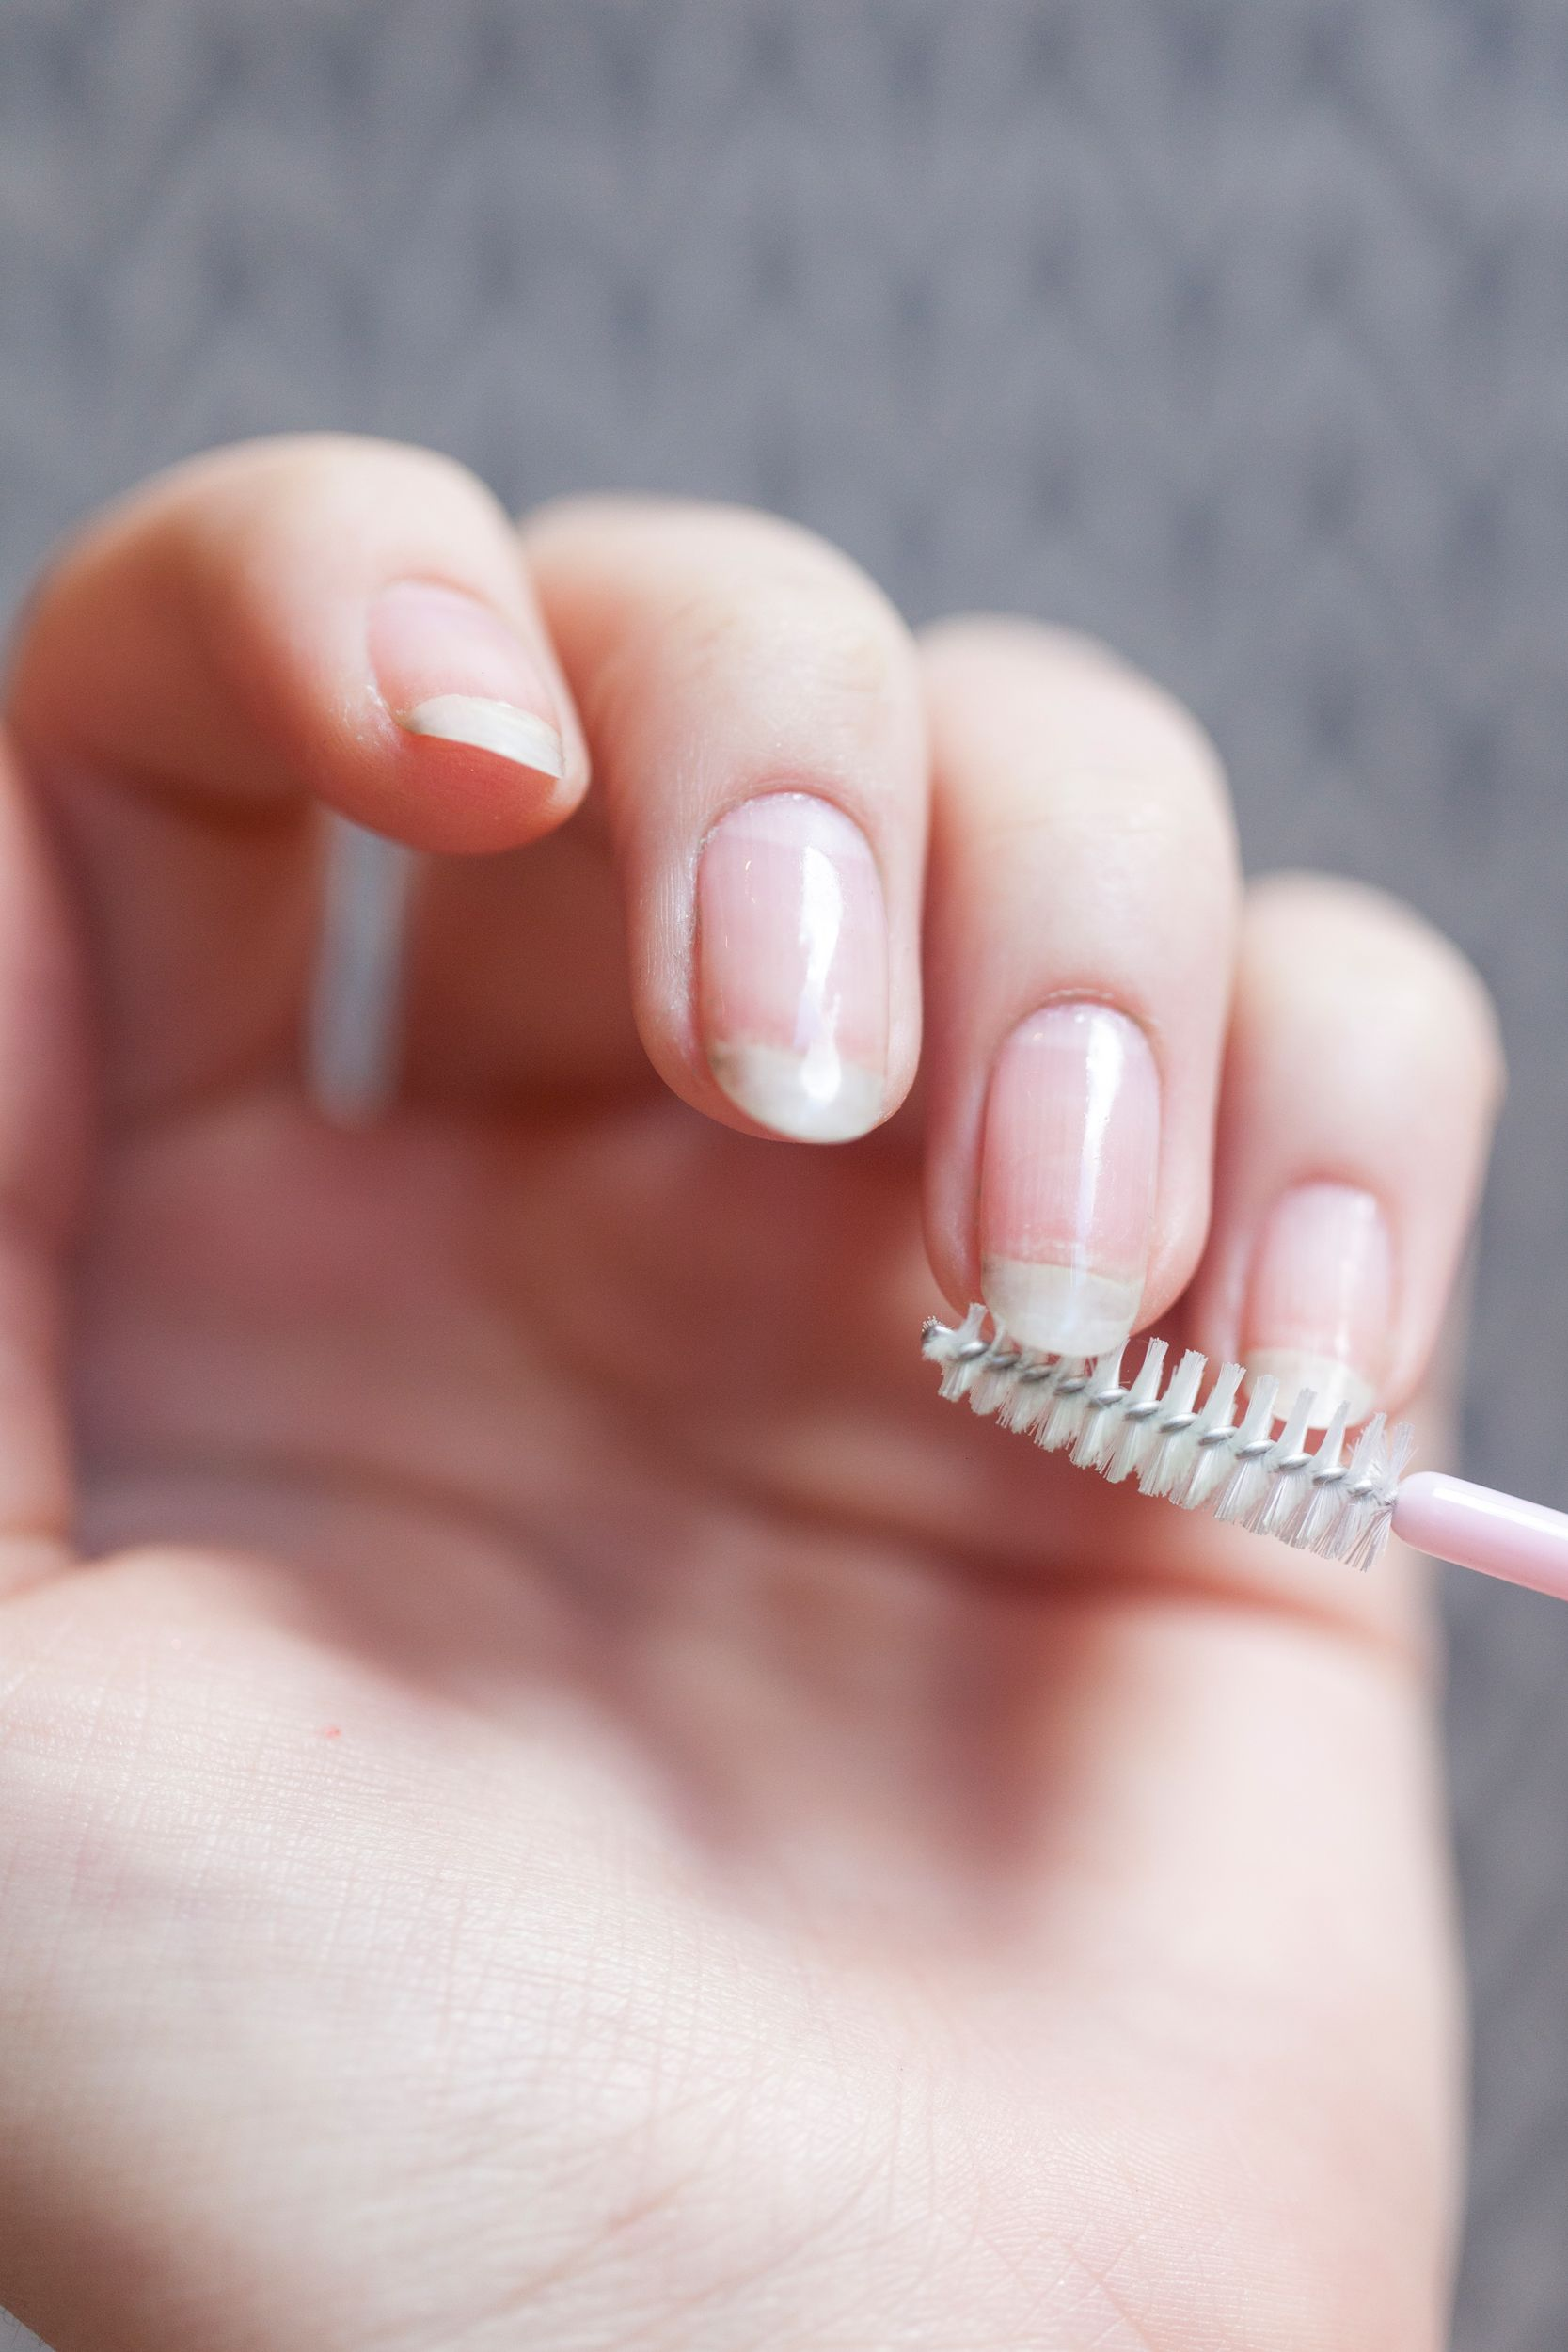 The Easiest Way To Clean Under Your Nails Without Ruining Your Manicure Manicure Nail Care Tips You Nailed It